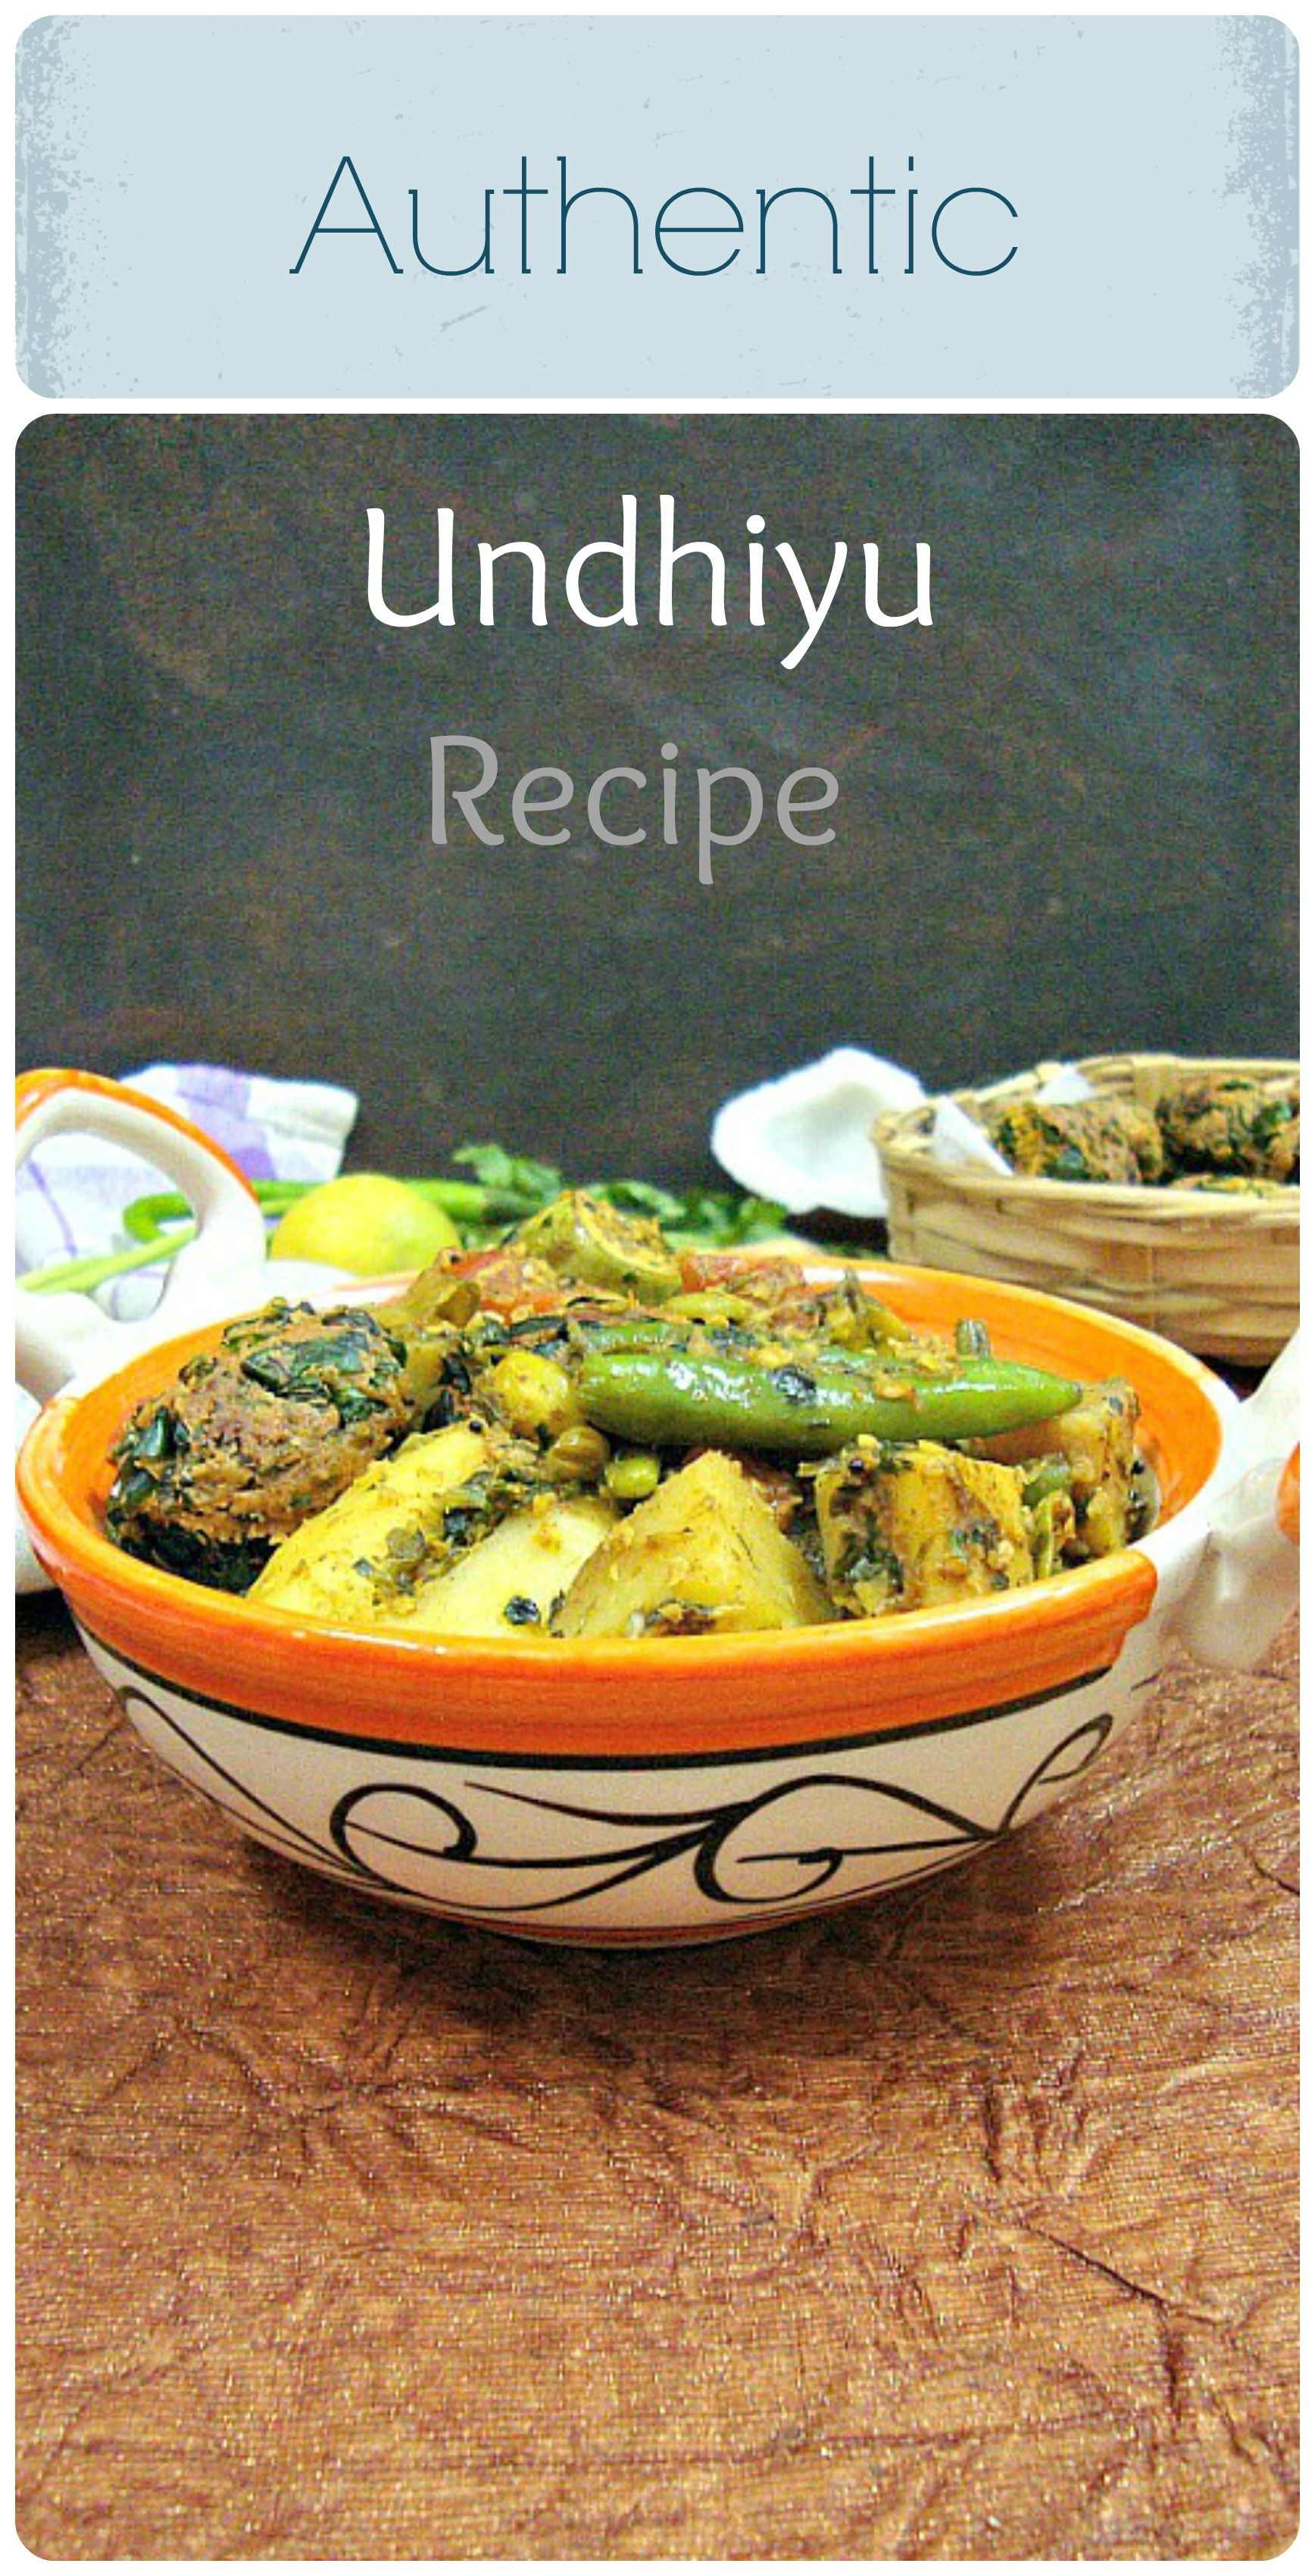 Authentic undhiyu recipe gujarati undhiyu recipe vegetarian authentic undhiyu recipe gujarati undhiyu recipe forumfinder Gallery